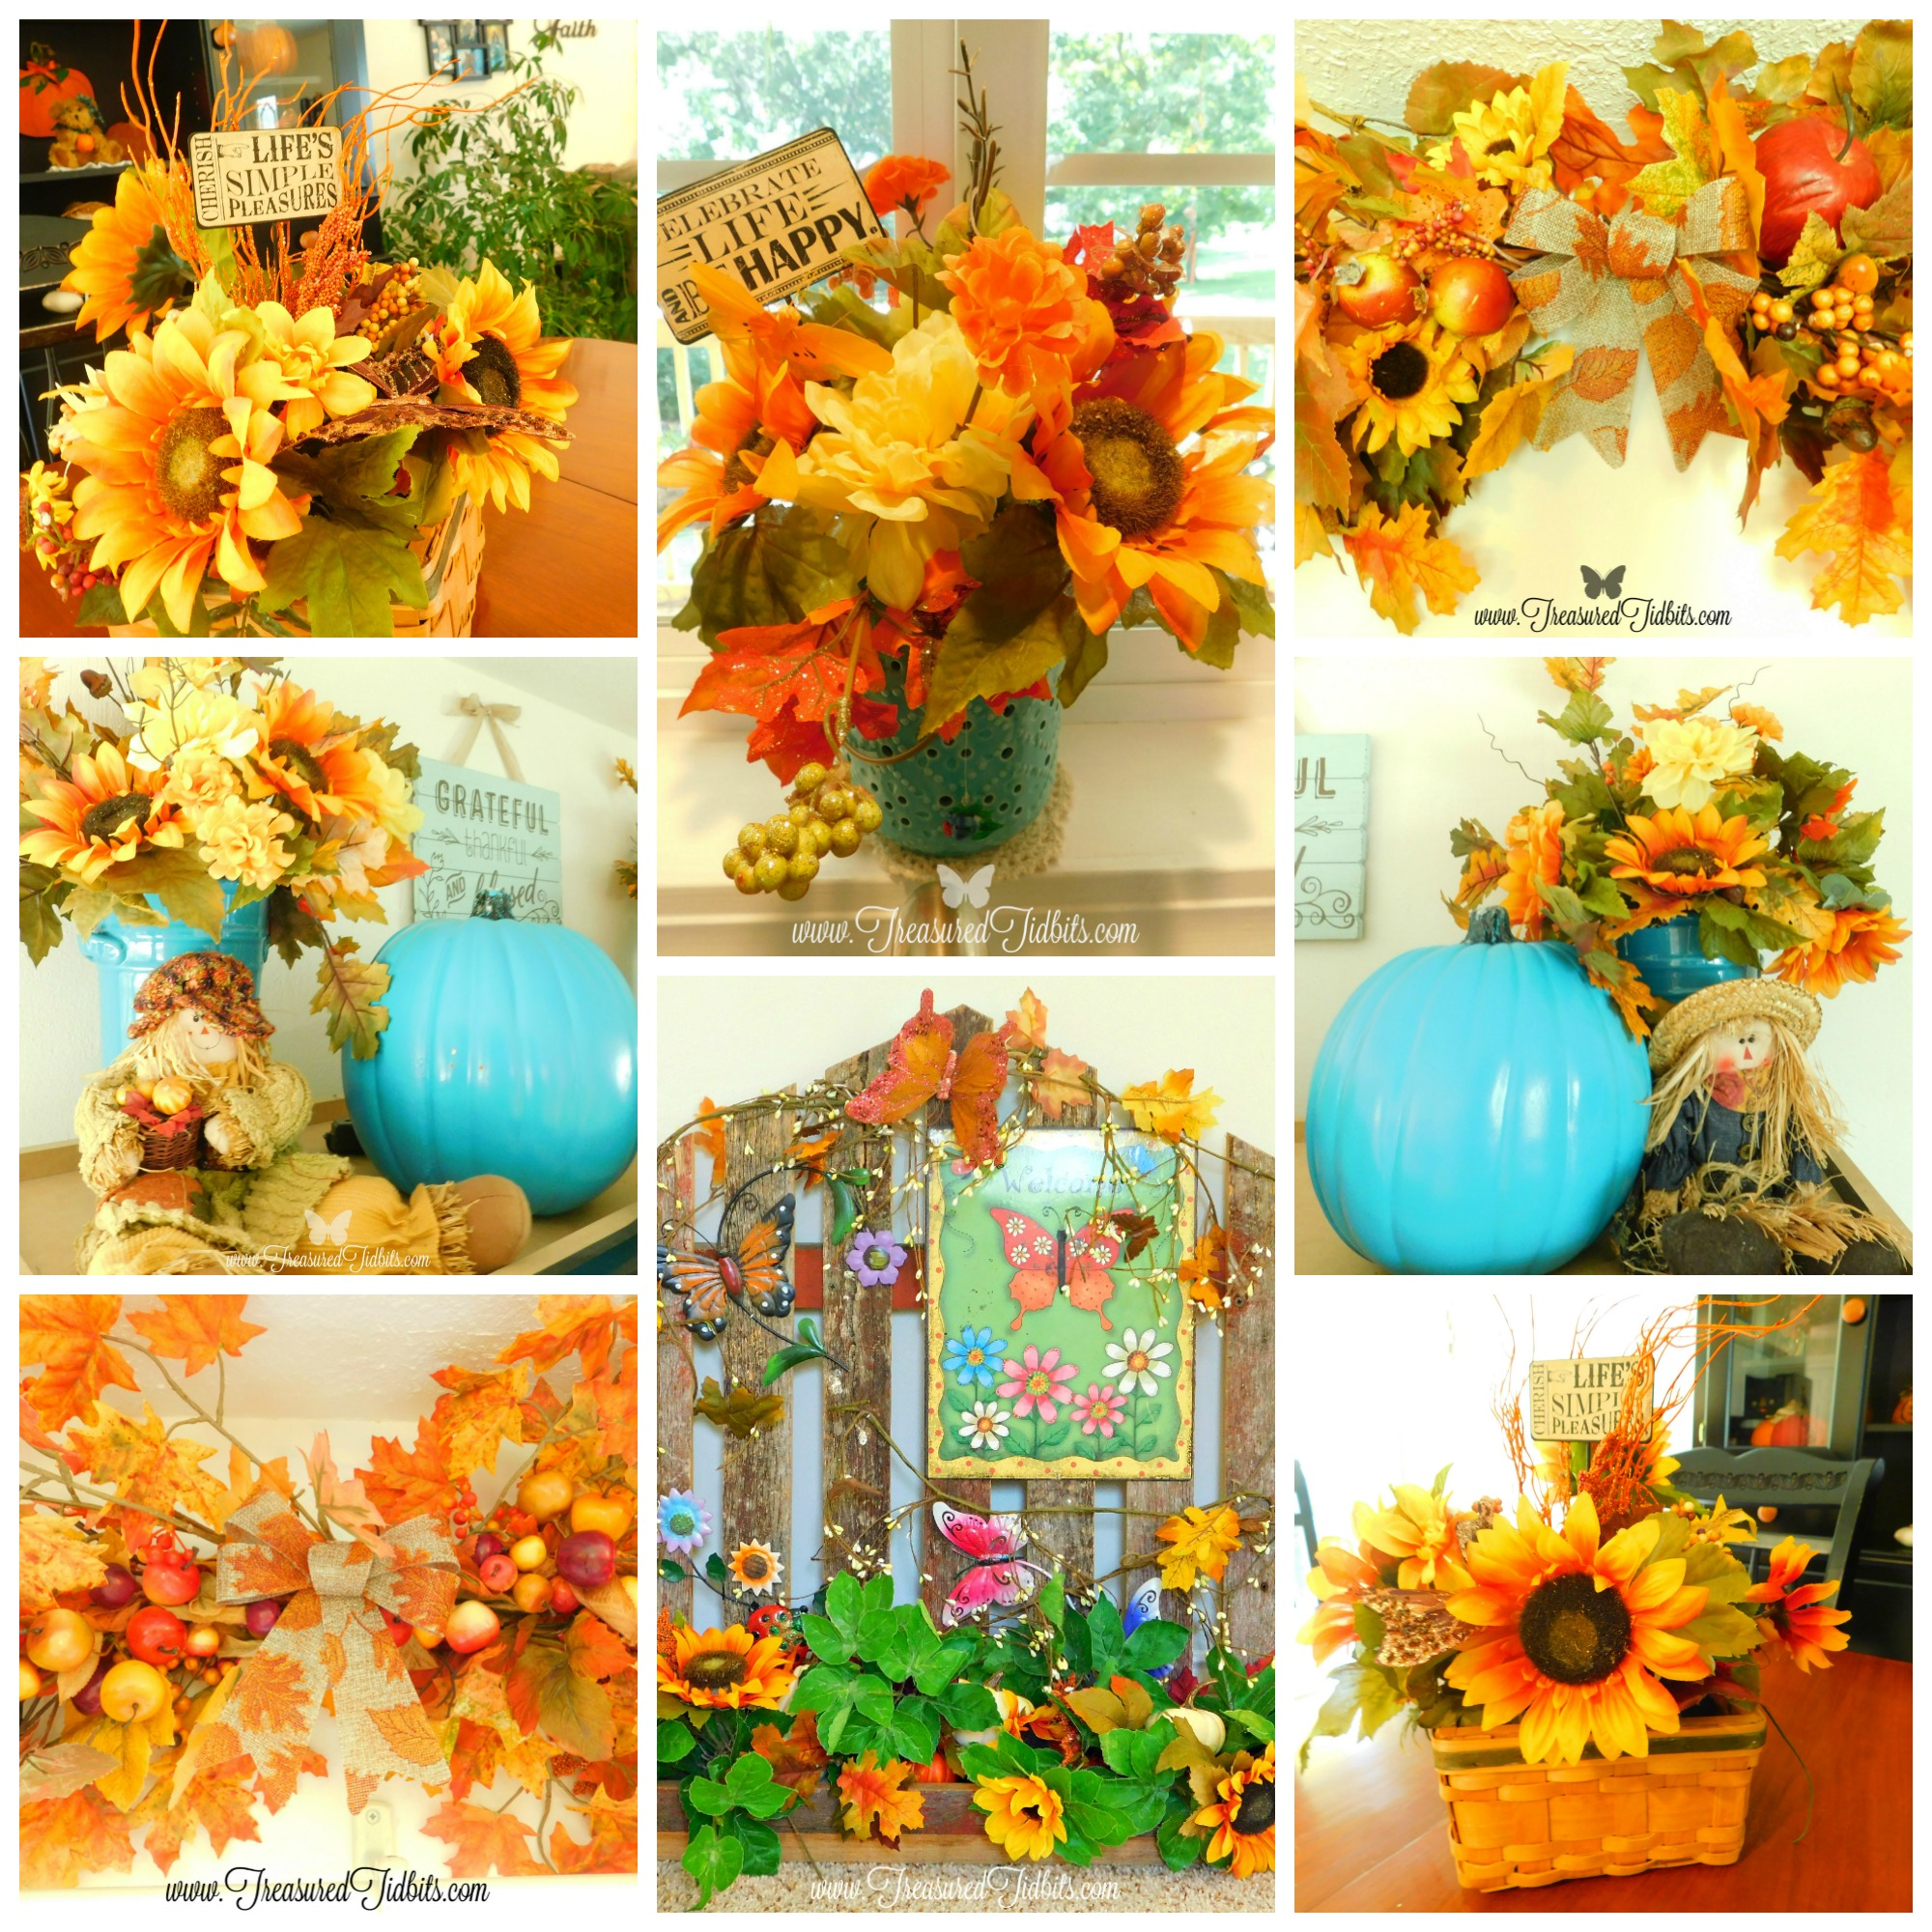 Fall Tour House on the Hill Flower Galore Sunflowers, Chrysanthemums, Leaves & More